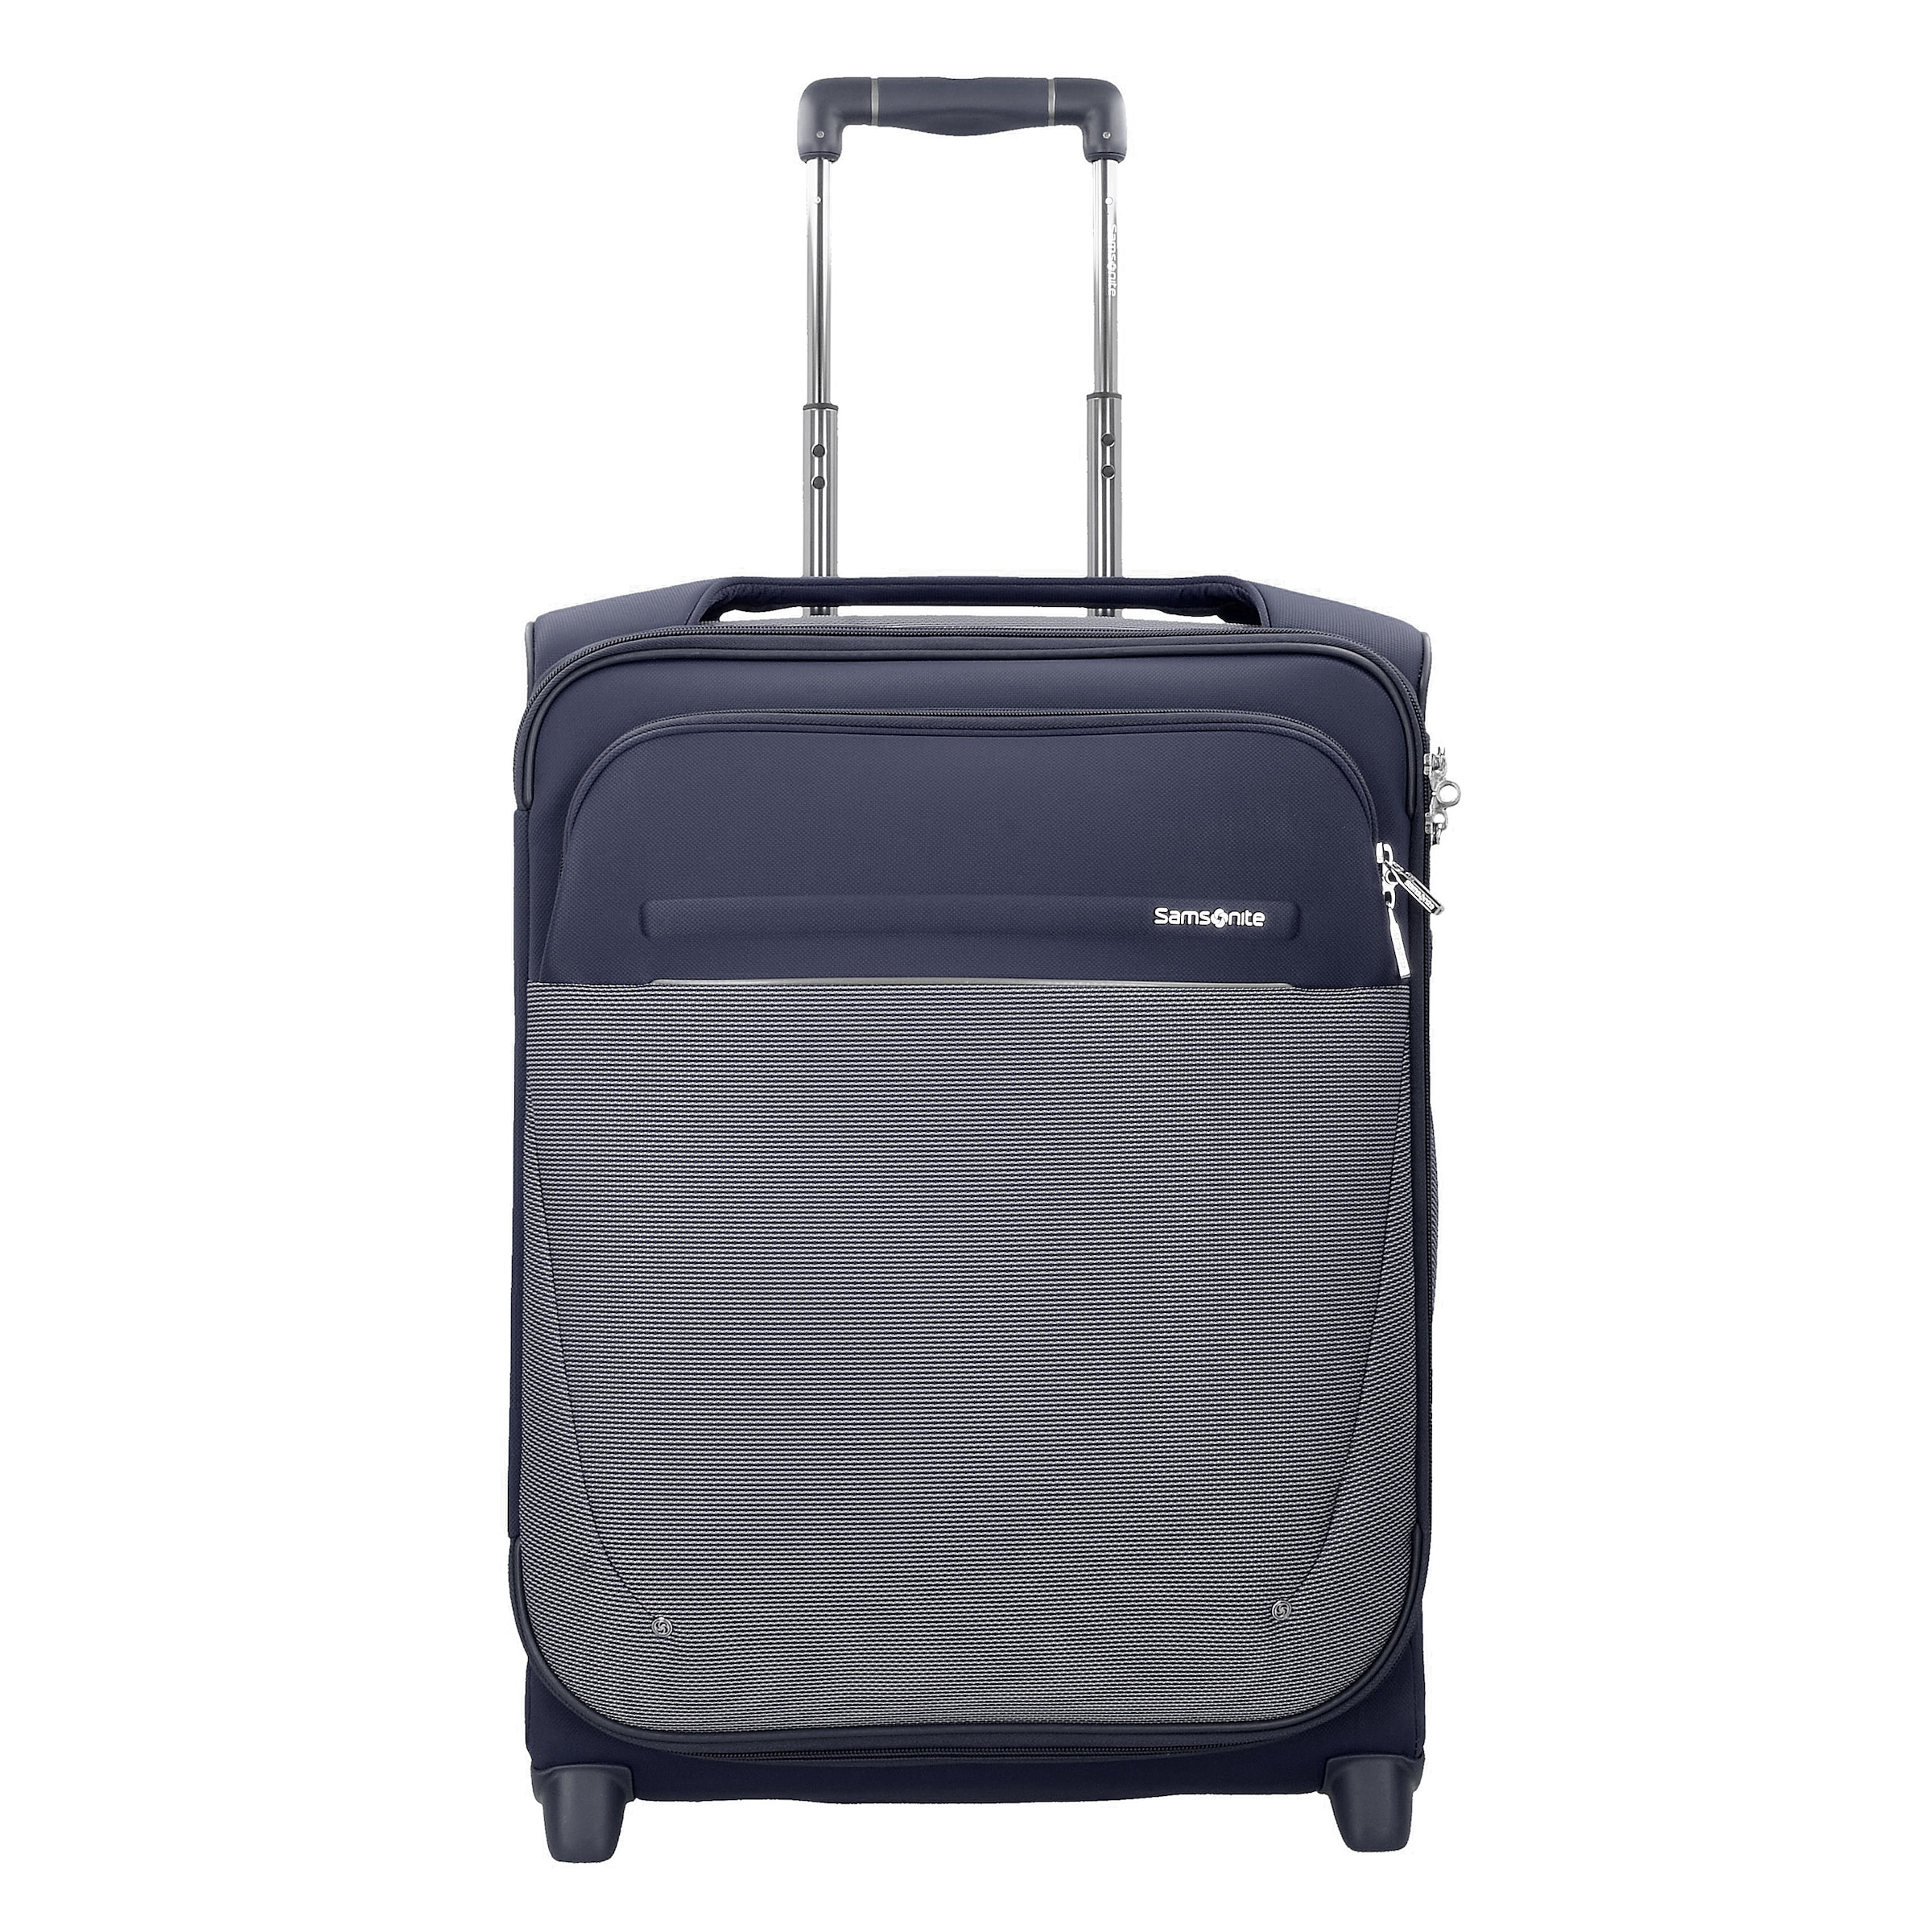 Dunkelblau In In Samsonite Kabinentrolley Samsonite Kabinentrolley In Dunkelblau Dunkelblau Kabinentrolley Samsonite Samsonite VMGUSpqz